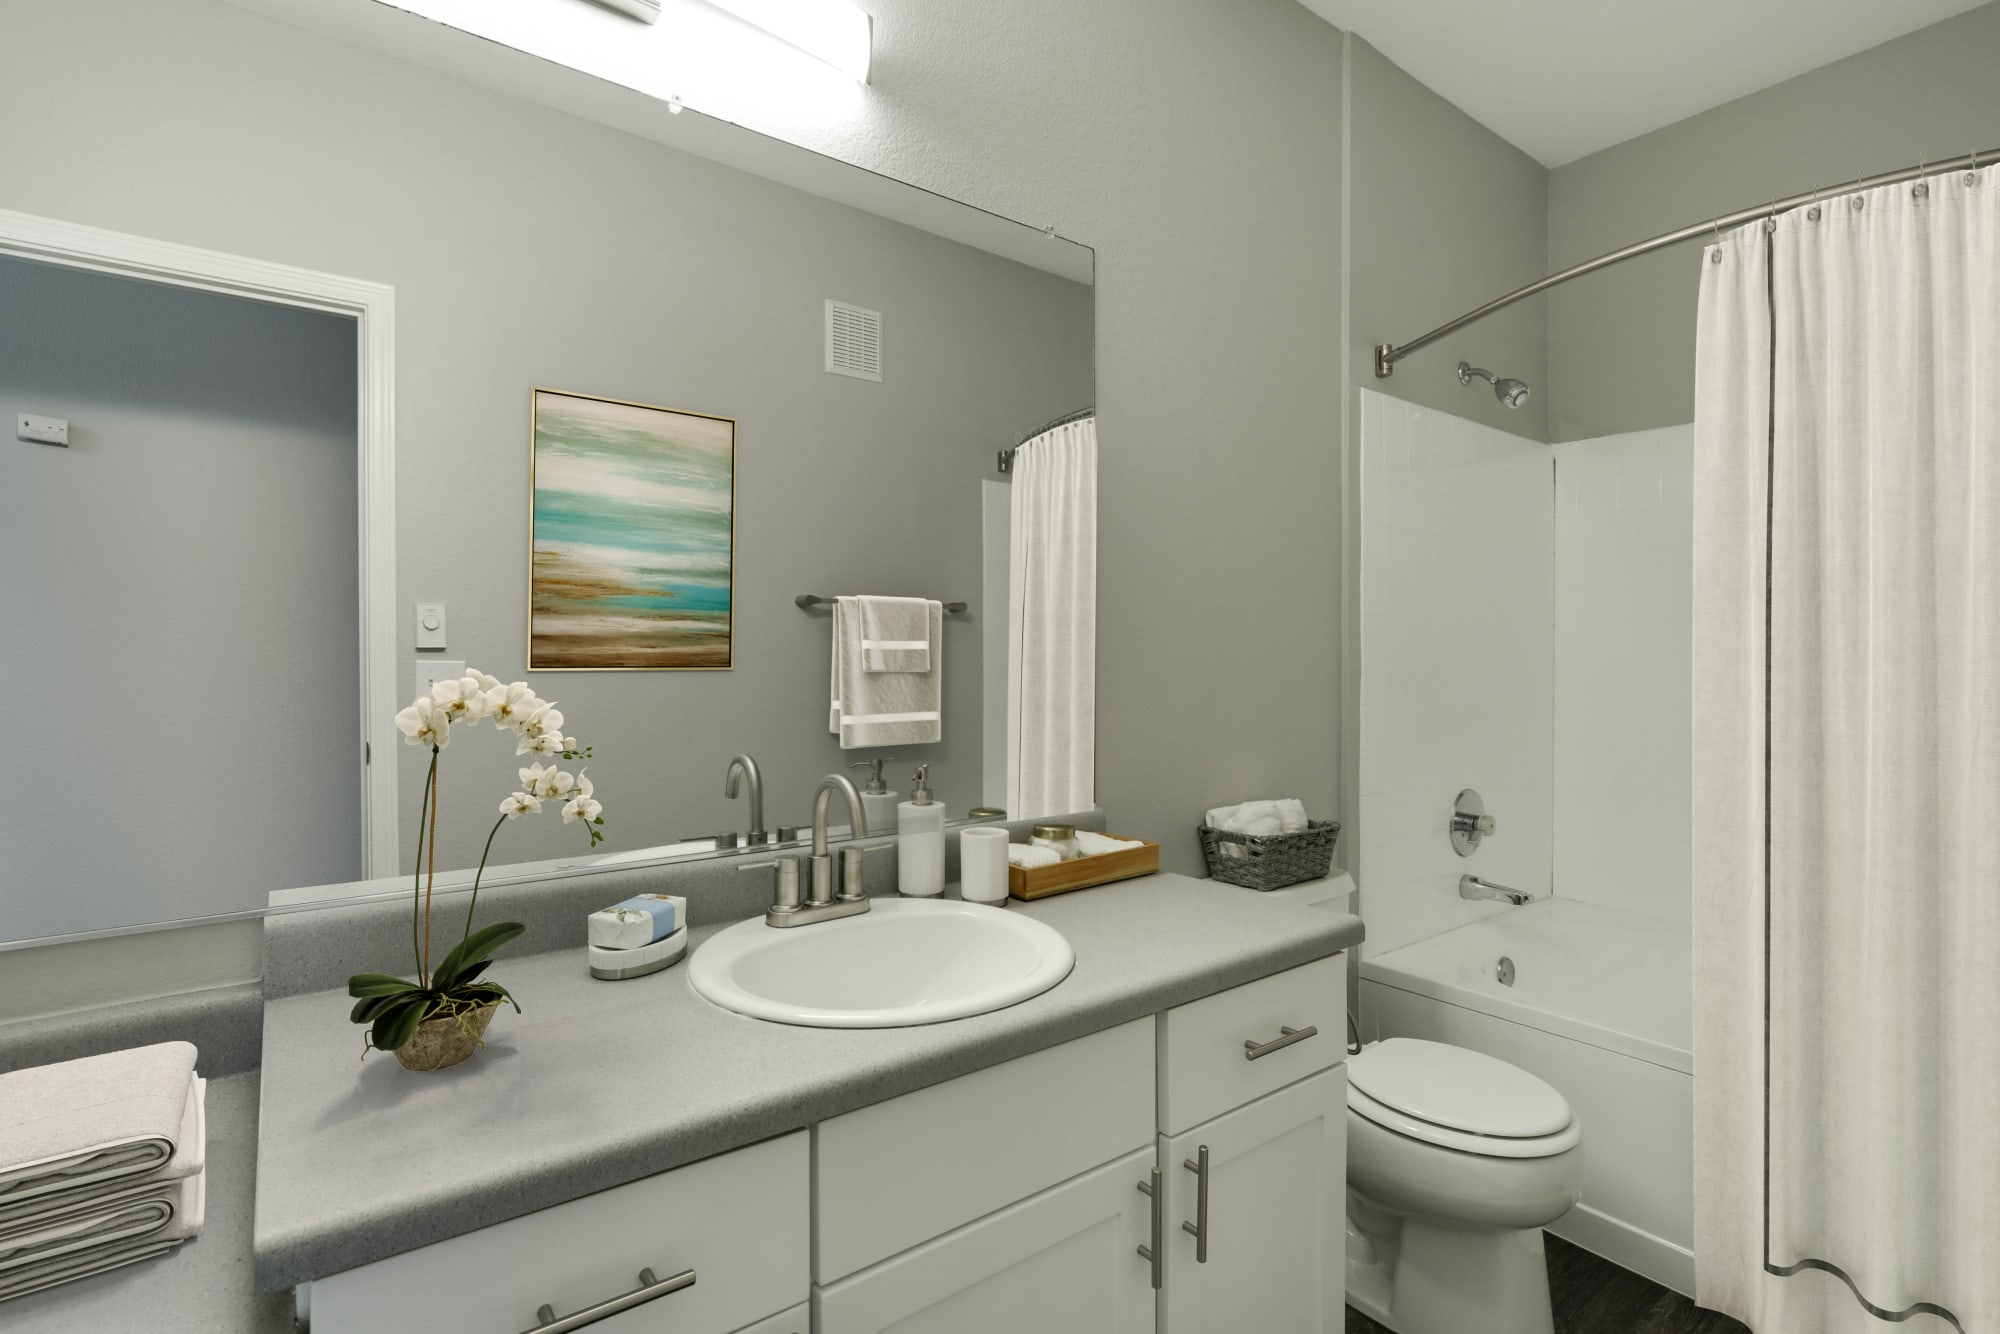 Renovated bathroom with white cabinets at The Grove at Orenco Station in Hillsboro, Oregon